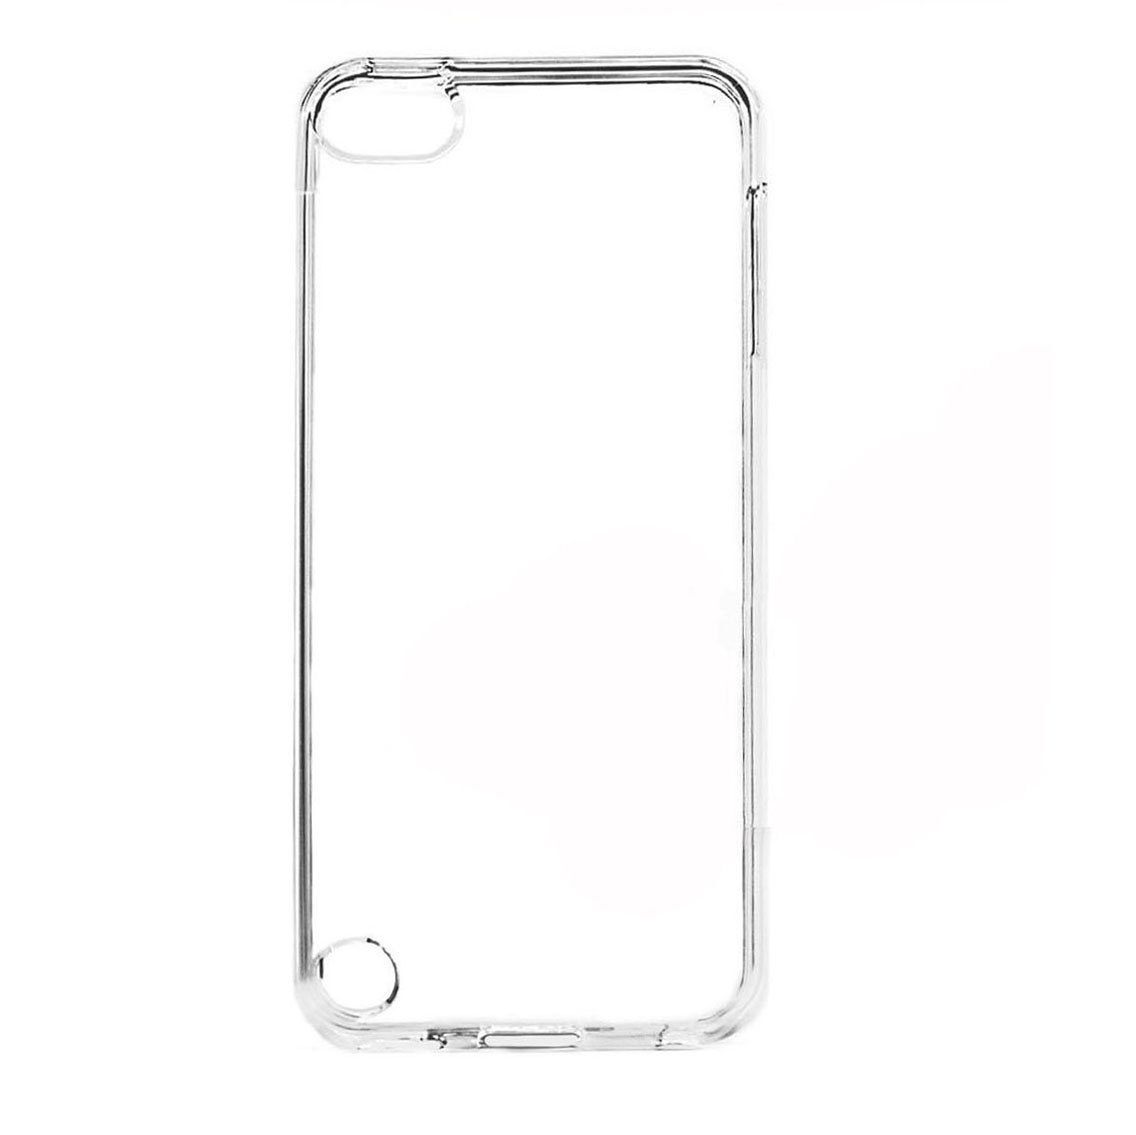 Mxx Ipod Touch 5th And 6th Generation Tpu Slim Clear Case